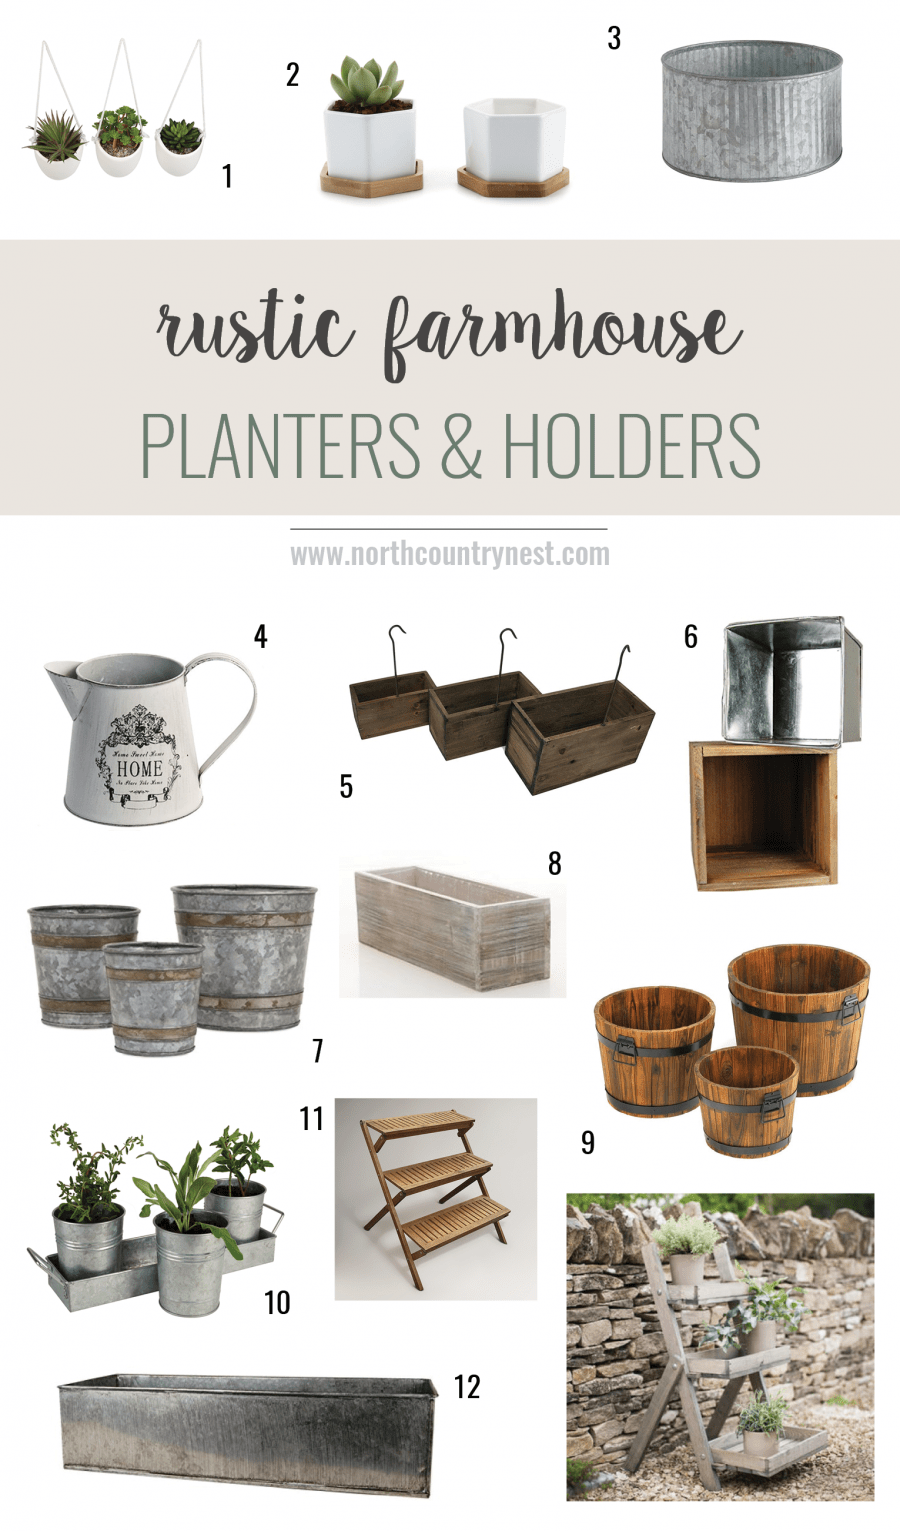 Rustic Farmhouse Planters and Holders